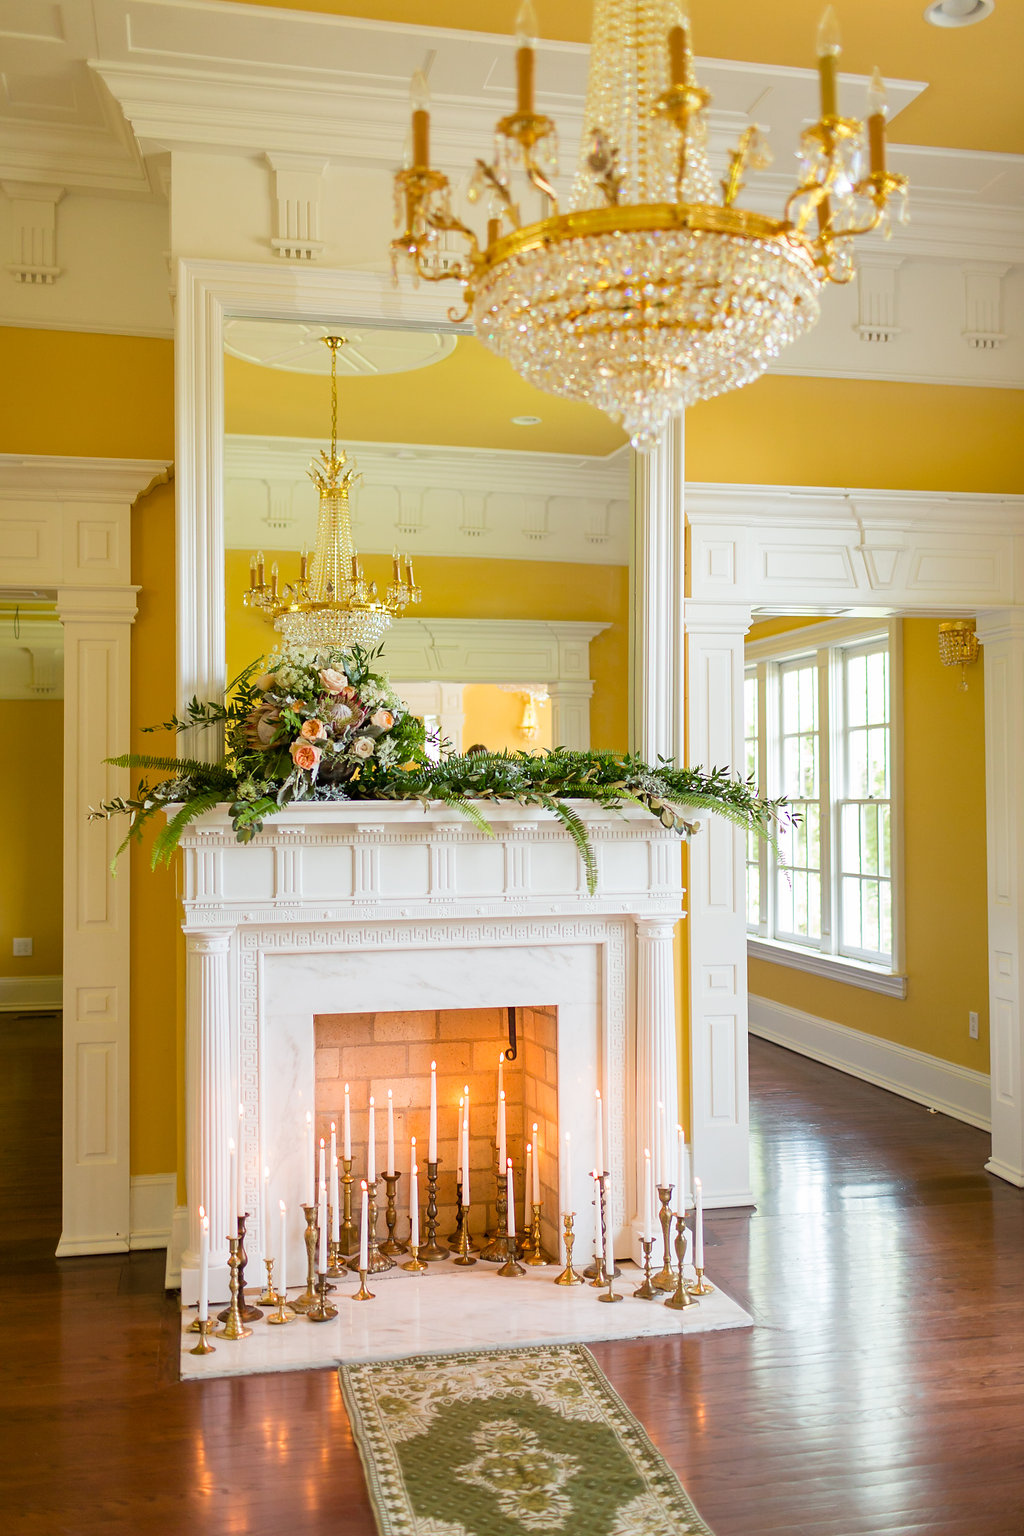 Locklane Weddings & Events + Fireplace + Wedding Inspiration + GranDale Manor + Caley King Newberry